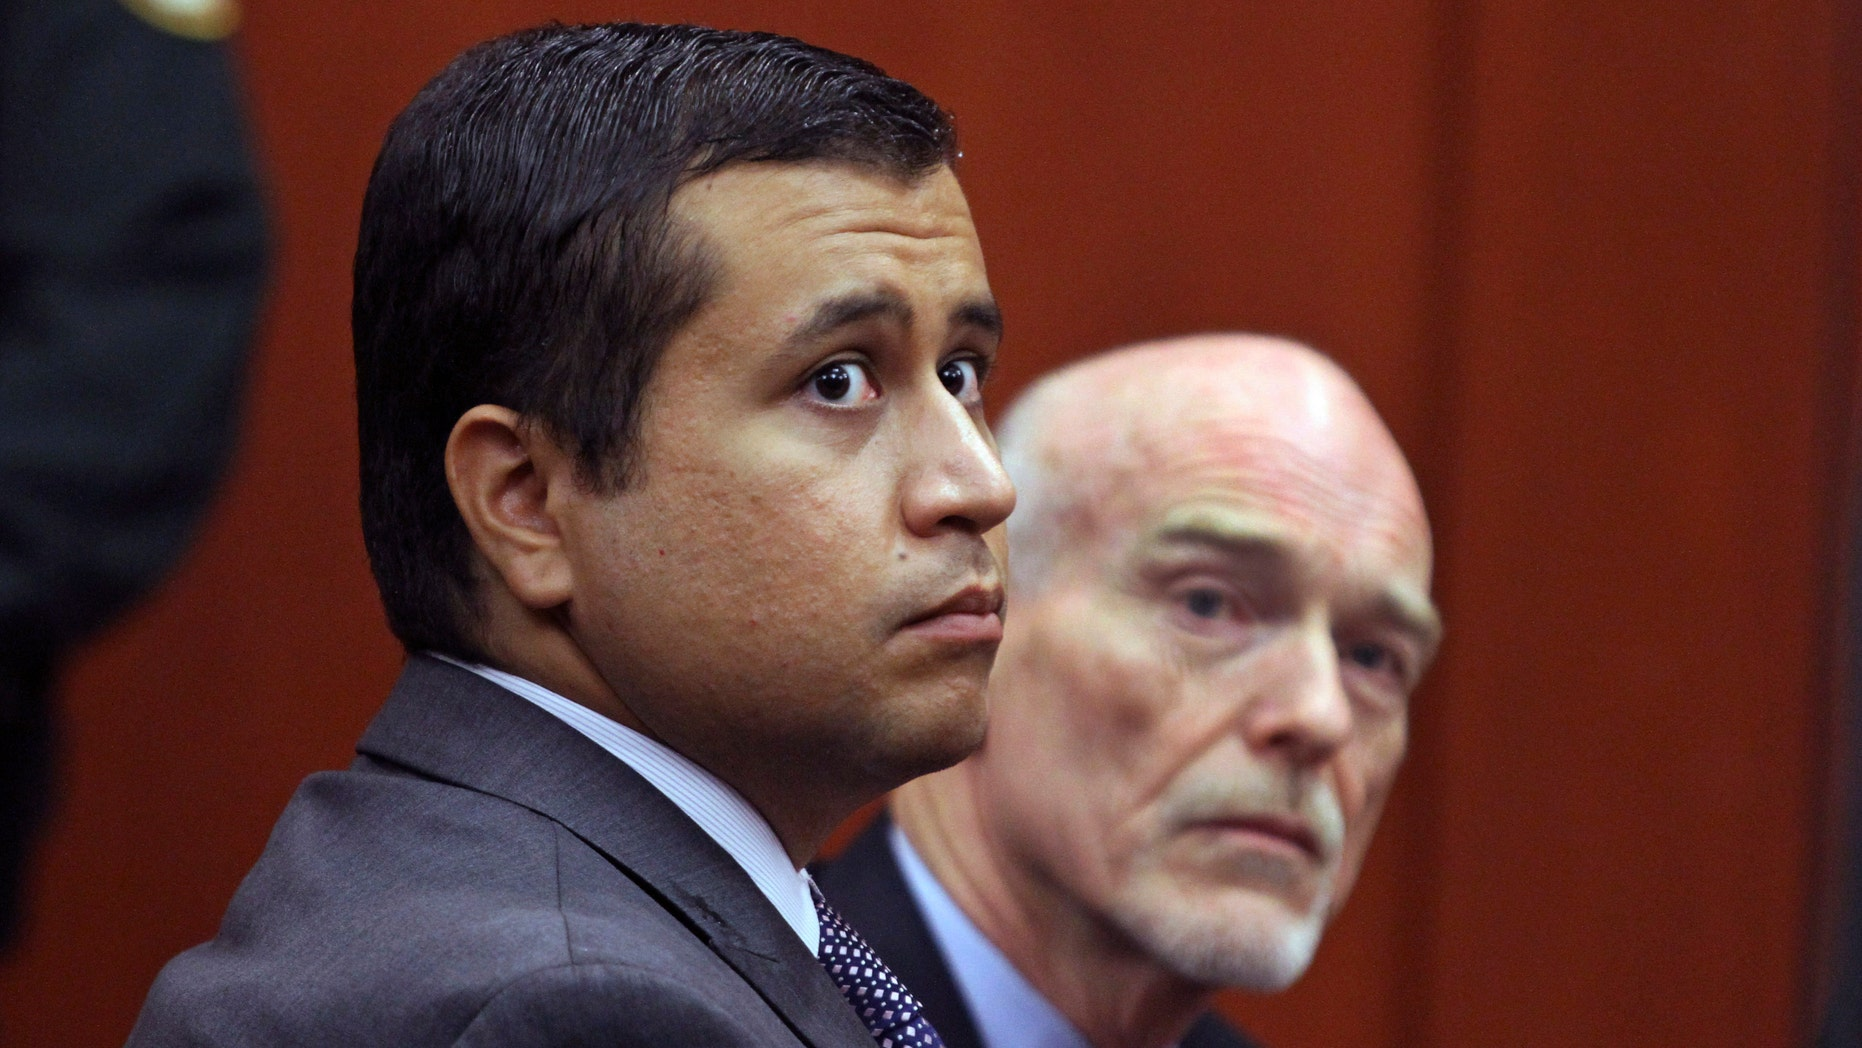 George Zimmerman, left, and attorney Don West at the Seminole County Criminal Justice Center in Sanford, Fla.